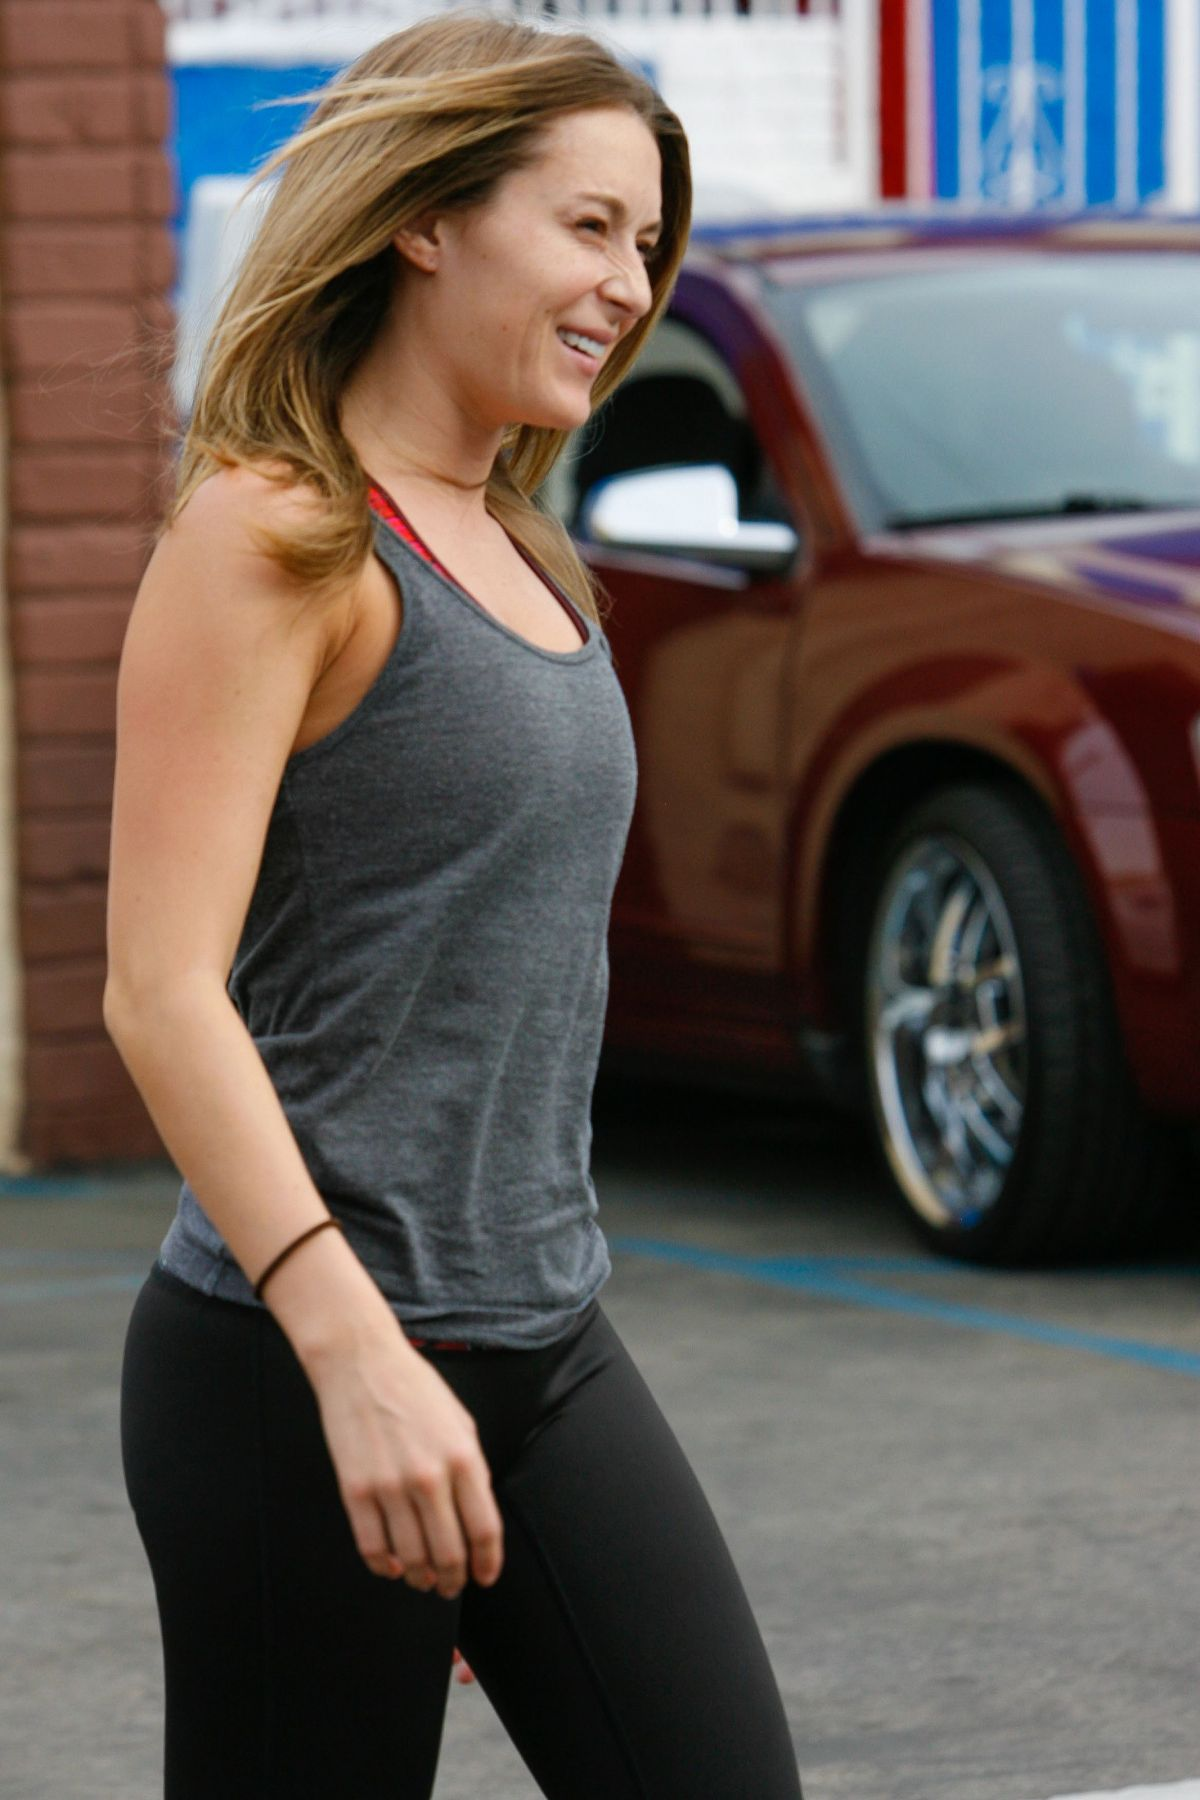 ALEXA VEGA at Dancing with the Stars Rehersal in Hollywood 10/27/2015